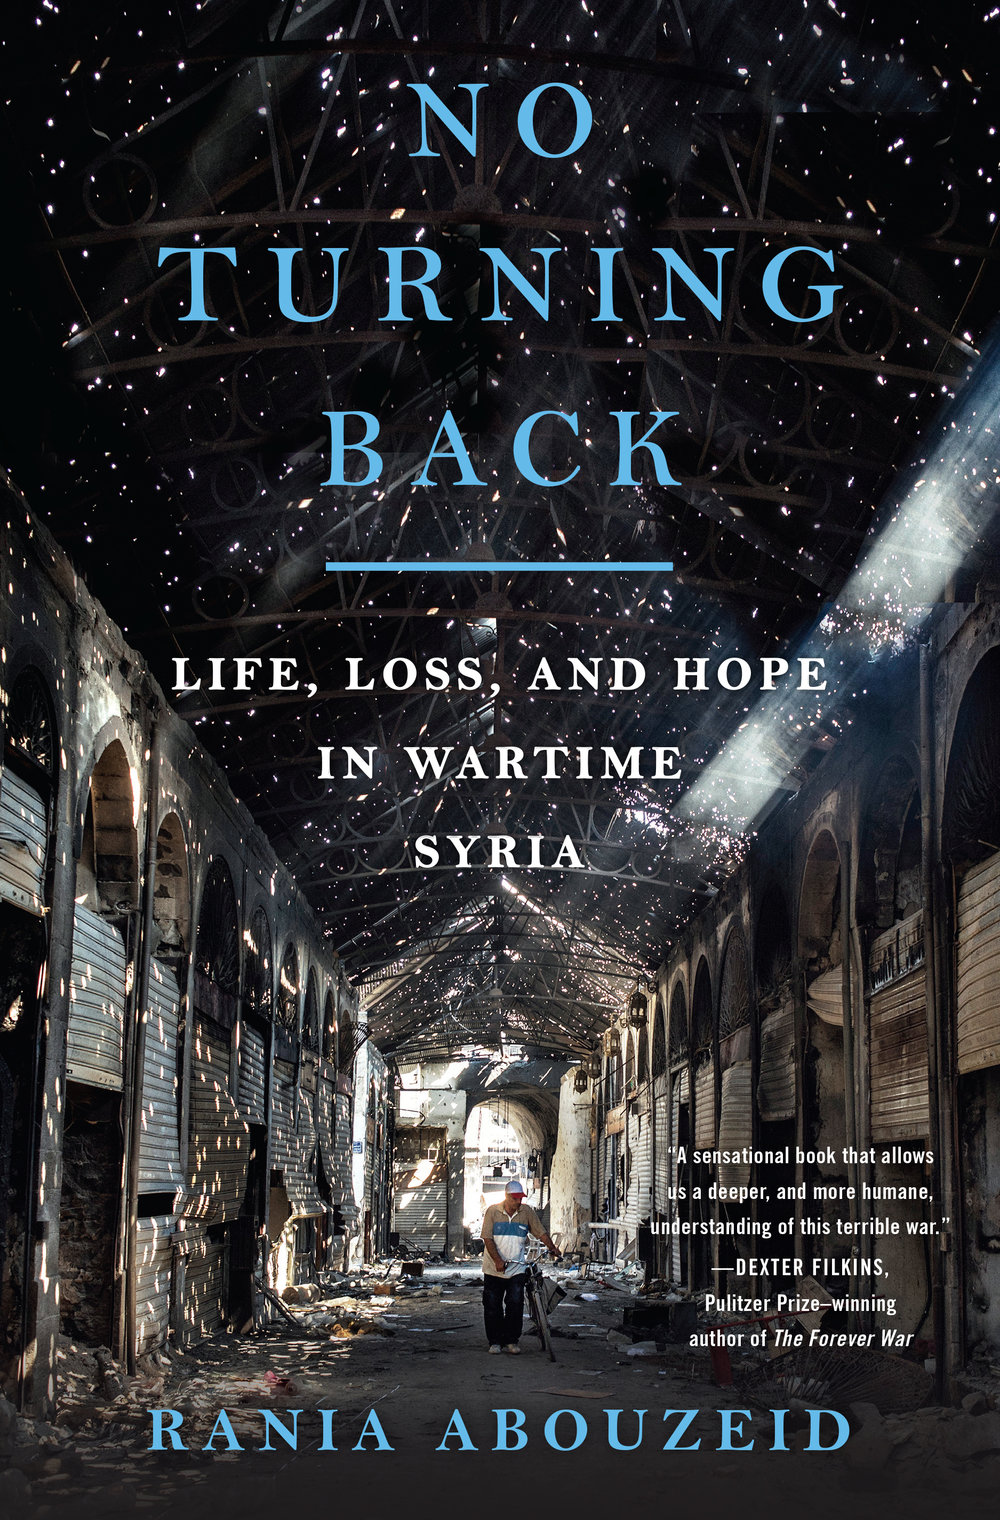 """MORE 'BEST OF 2018' - THE CHRISTIAN SCIENCE MONITOR - BEST 2018 NONFICTION TITLES""""Rania Abouzeid, who conducted life-threatening reporting to make the book happen, based """"No Turning Back"""" on personal stories of those affected by the Syrian civil war. She gives voice to a handful of the millions of Syrians whose lives were tragically upended by war.""""MEN'S JOURNALBooks We Couldn't Put Down in 2018 - including No Turning Back, a """"feat of war reporting"""" that brings """"into focus a war that too often feels unclear.""""MONEYWEBGreat Books to Read in the Christmas Break - including No Turning BackFOREIGN POLICY INTERRUPTEDBooks of 2018 - including No Turning BackHONG KONG FREE PRESSThe Ten Best Human Rights Books of 2018 - including No Turning Back"""